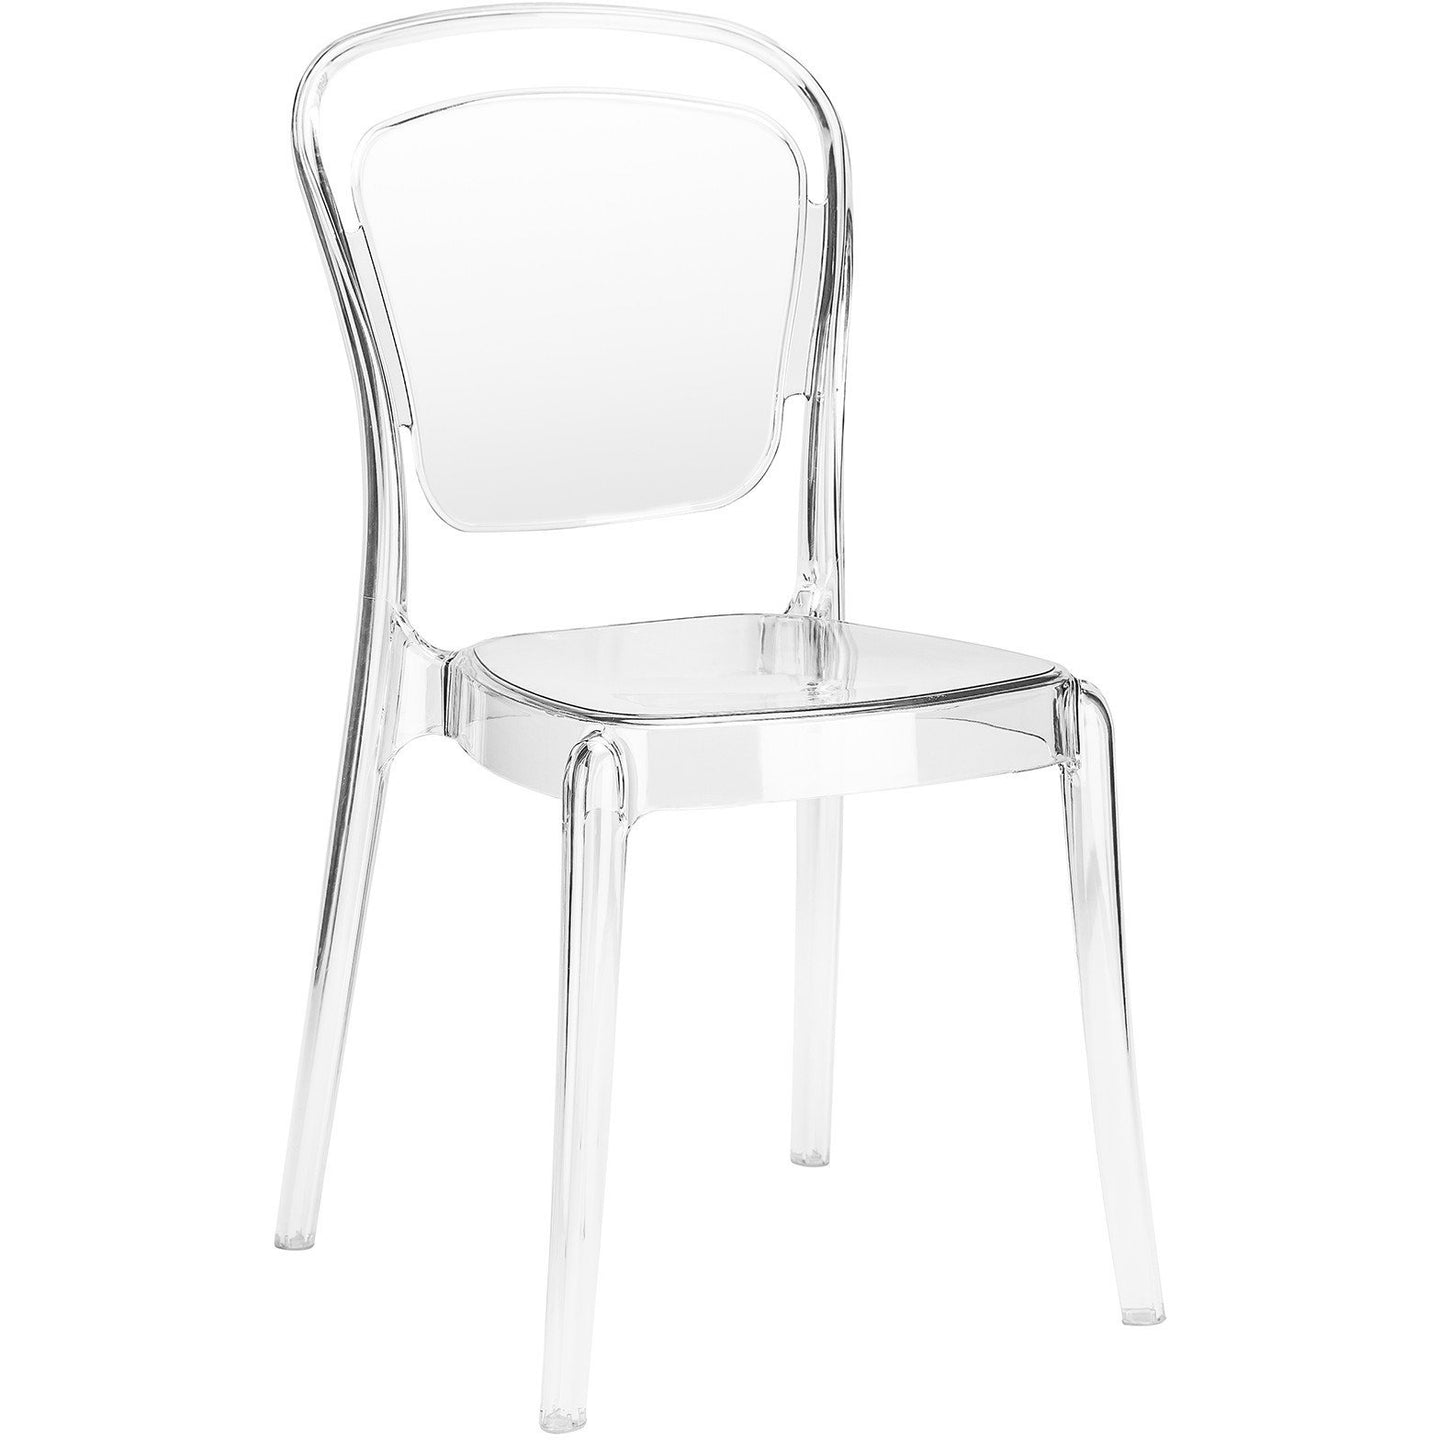 Lanna Furniture Palmira Dining Side Chair (Set of 2)-Minimal & Modern